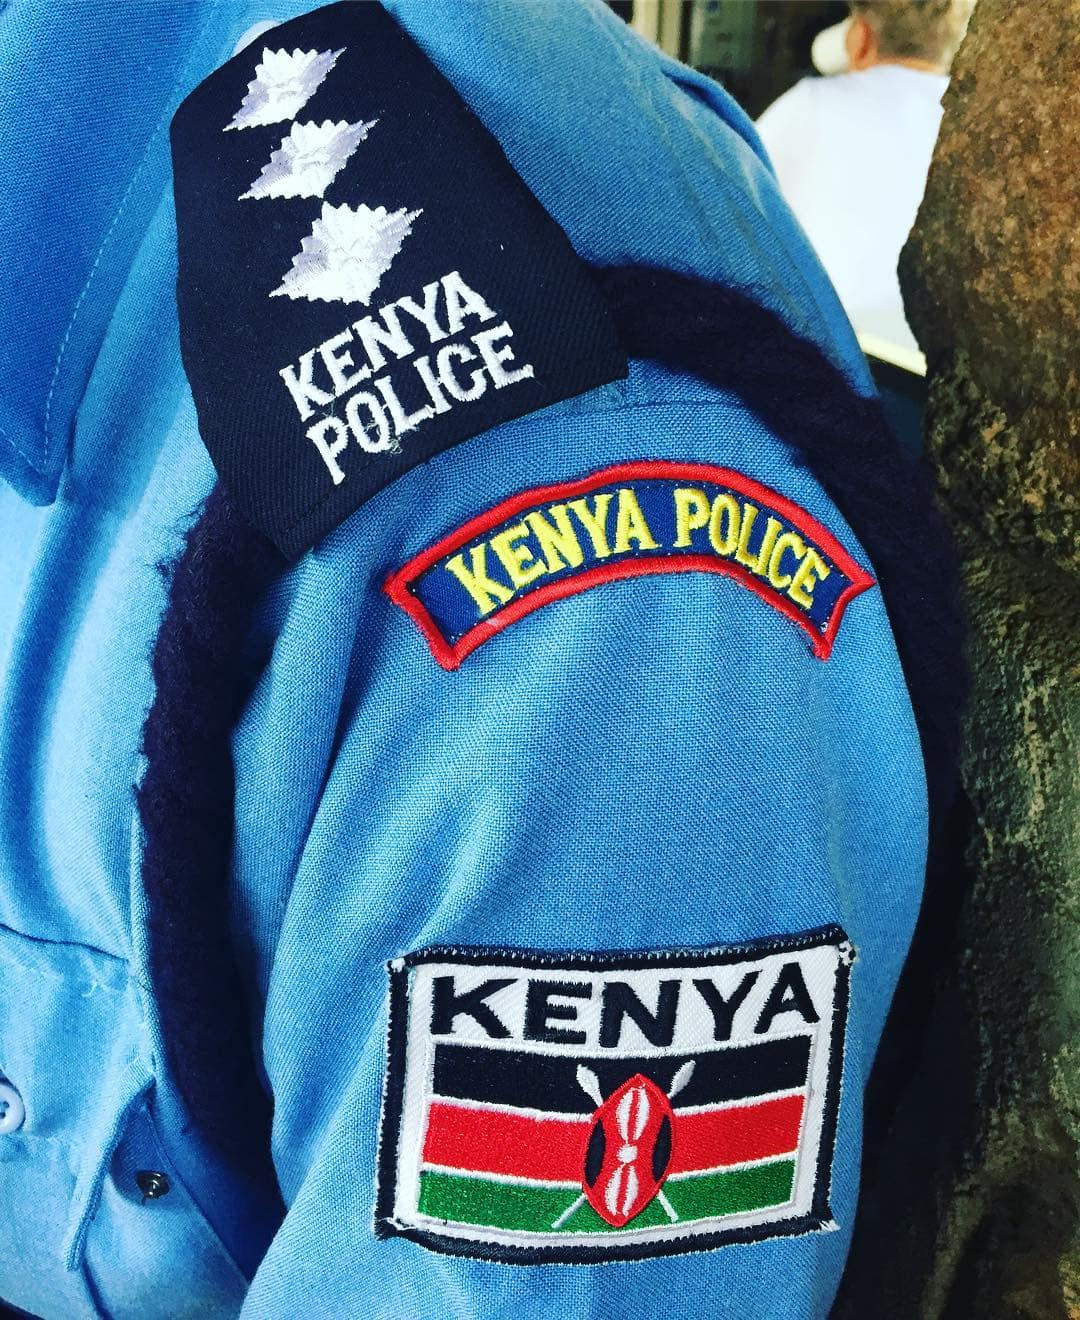 Kenya police ranks and badges from lowest to highest 2019